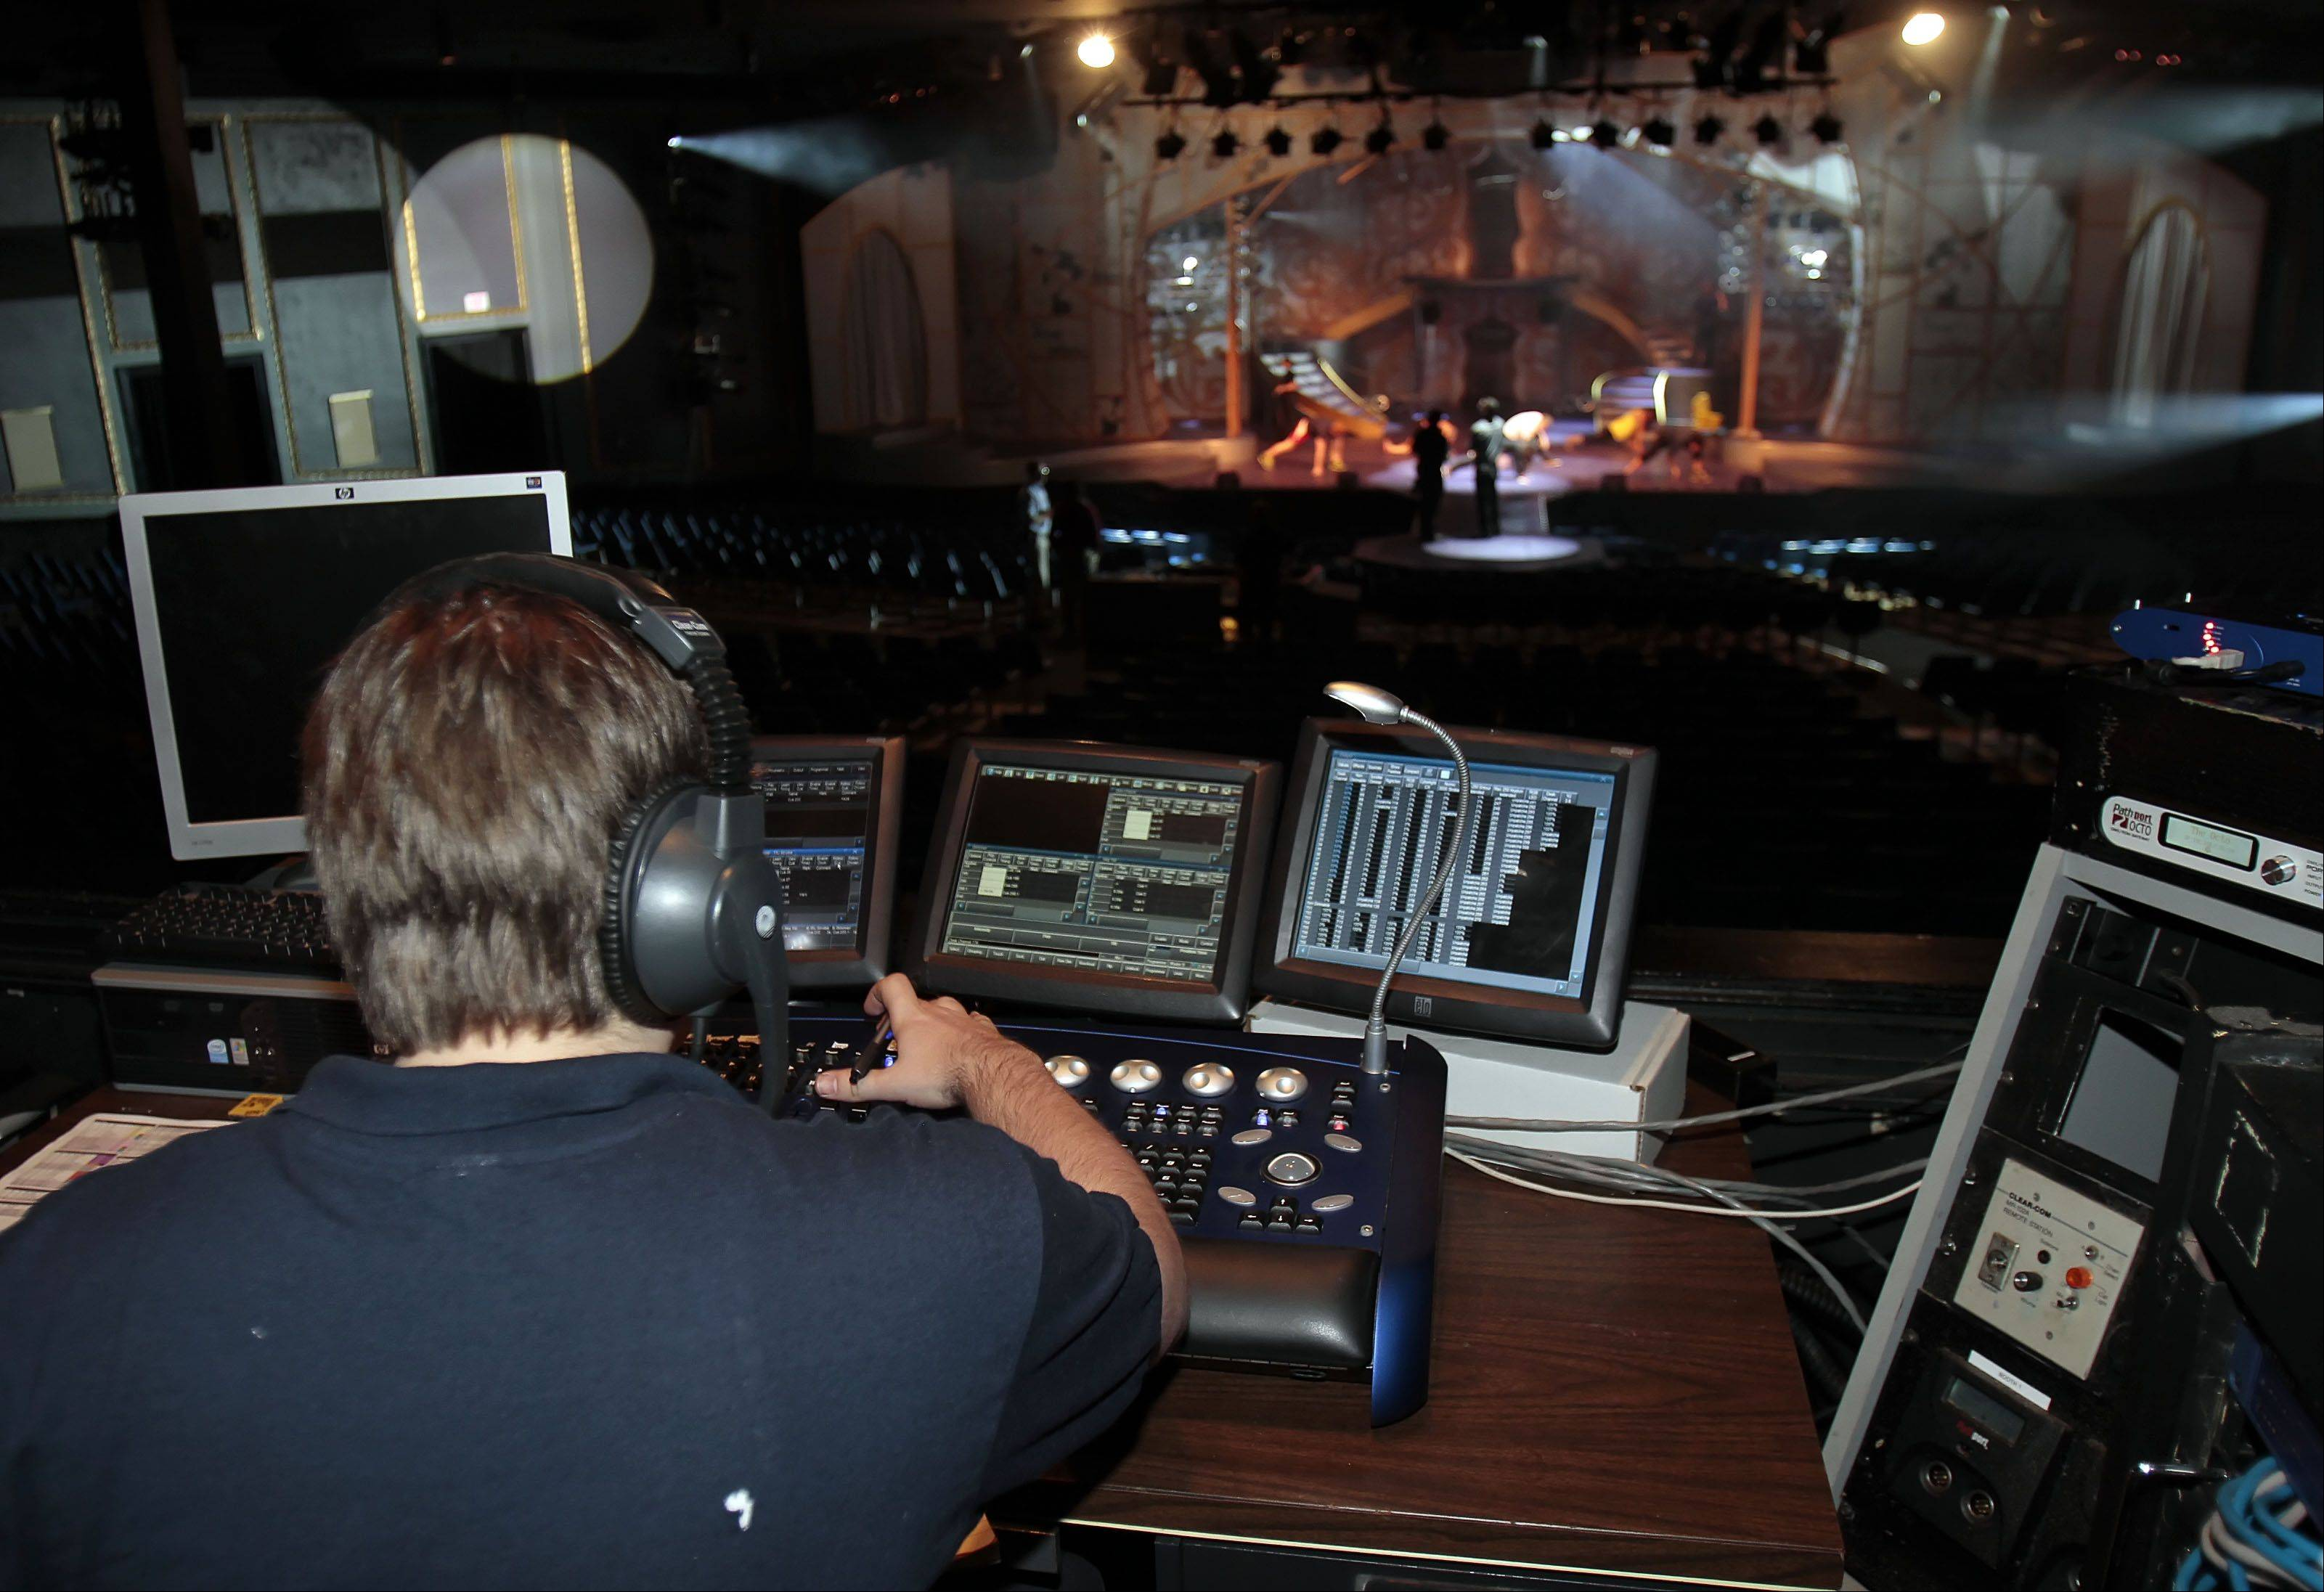 Lighting and sound operator Chris Payne of Racine, Wisconsin operates the lighting board during the production.